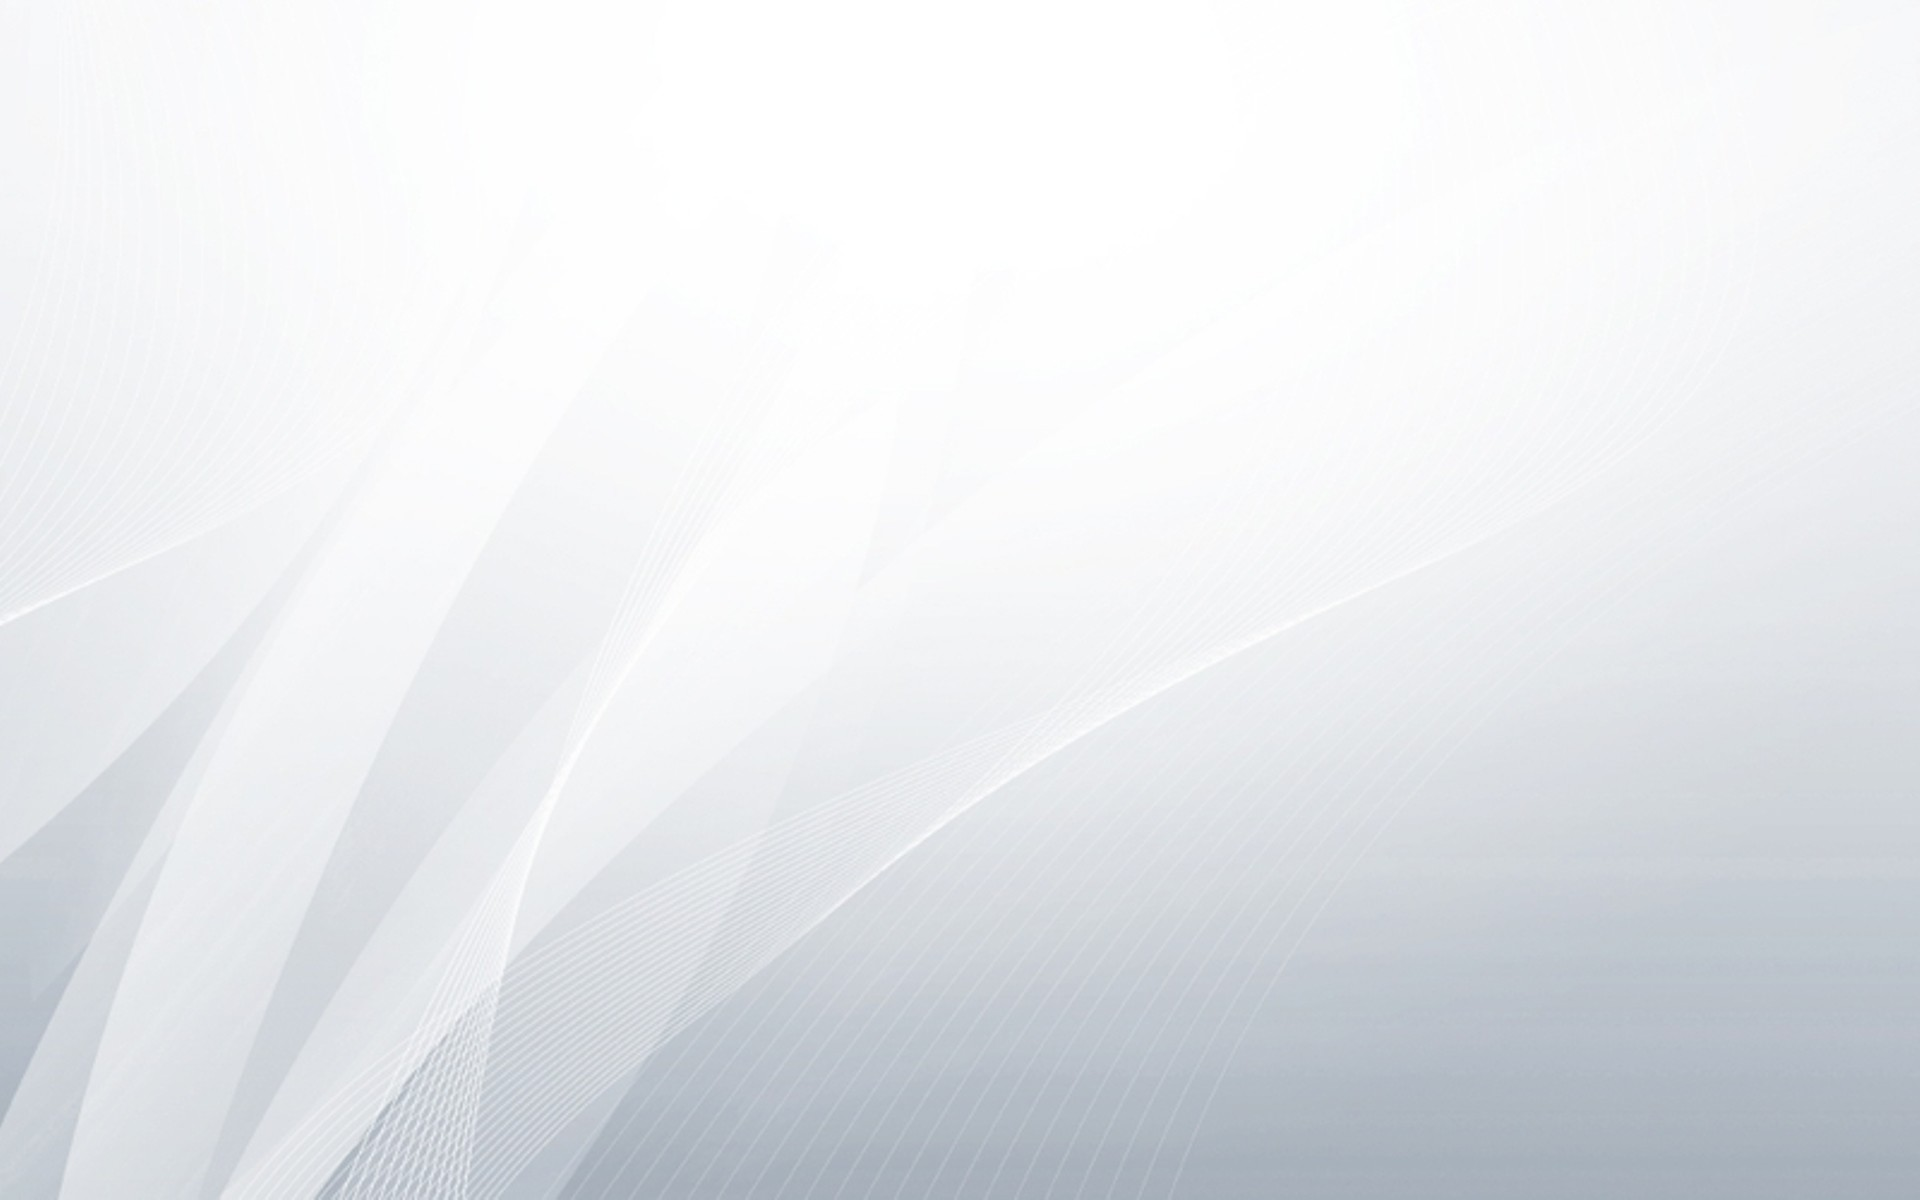 White Wallpaper Background 74 Images